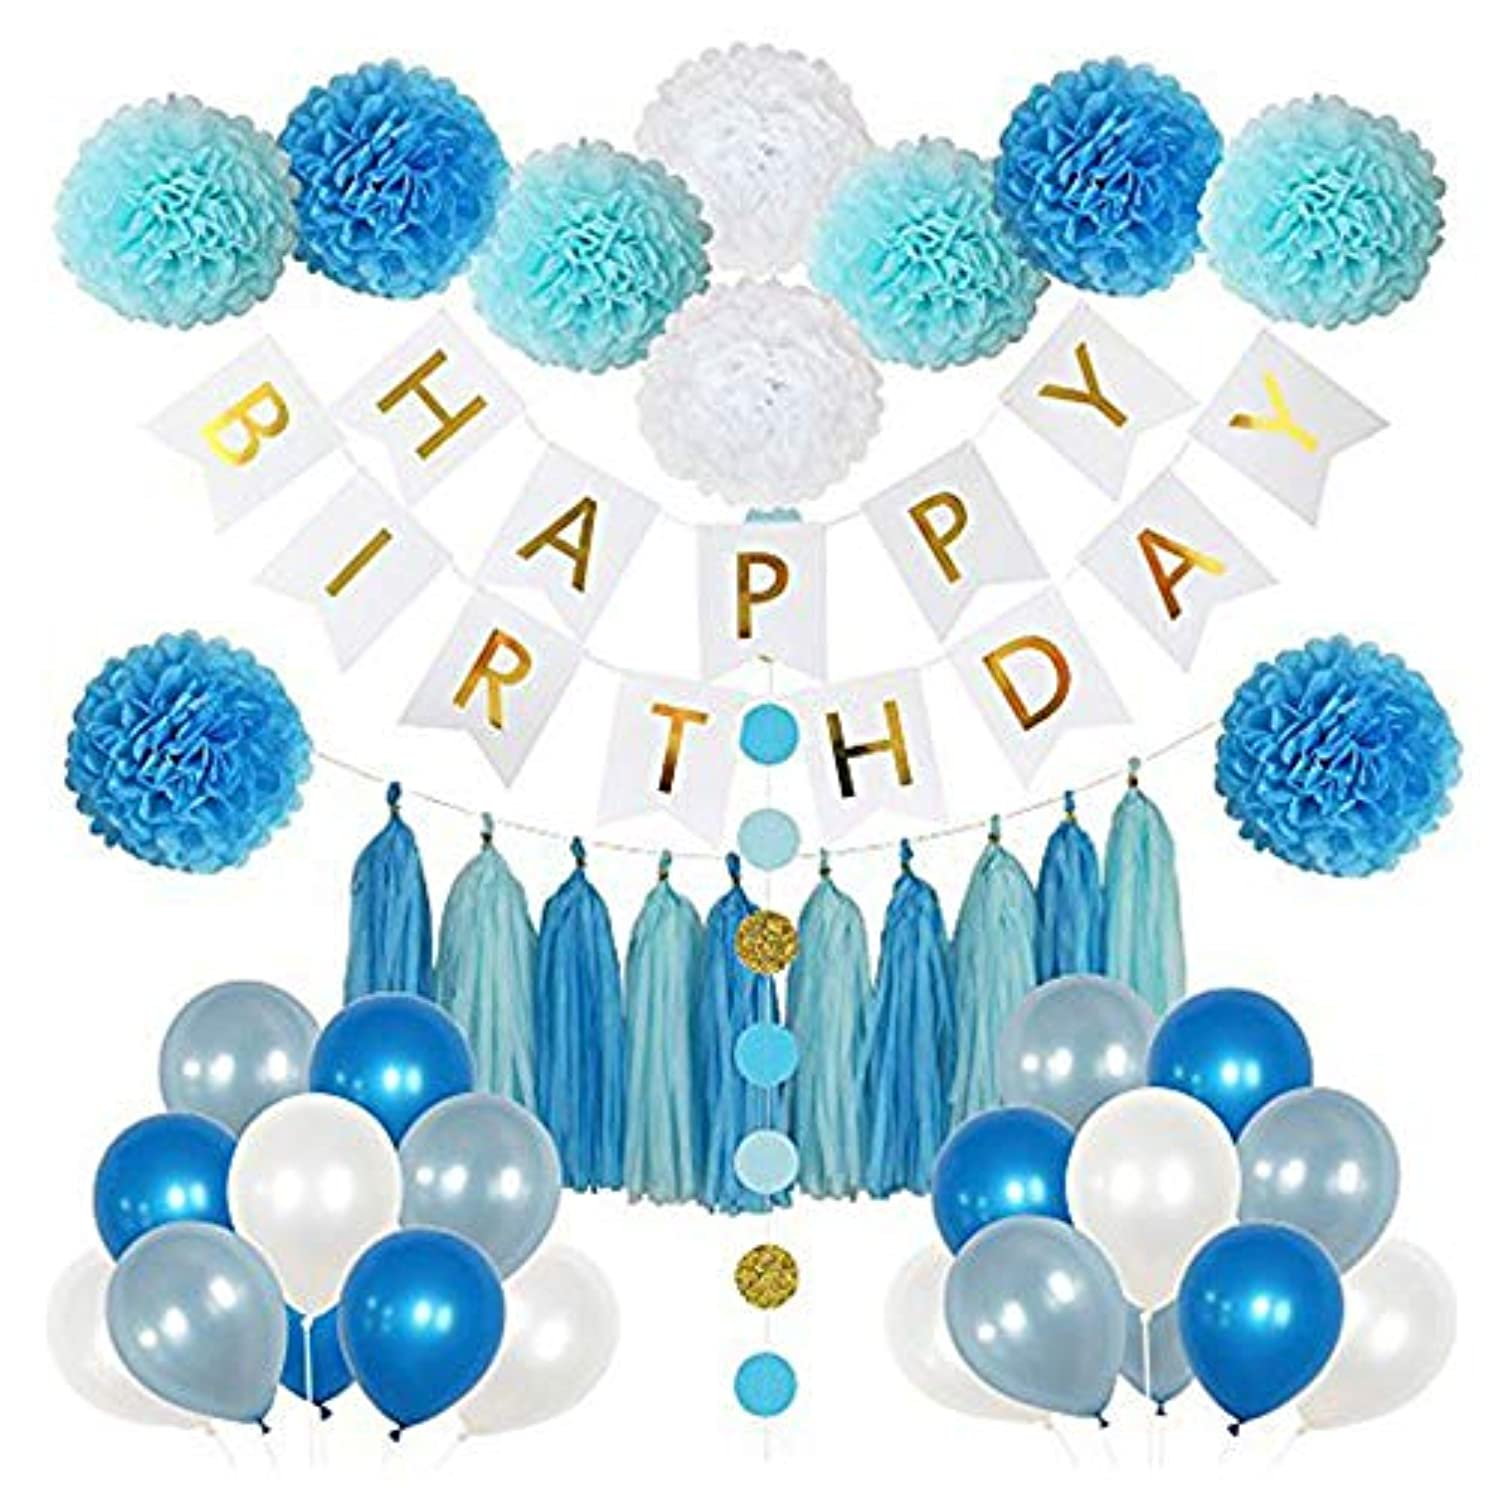 Axgo Happy Birthday Party Decoration Set Paper Poms Flowers, Tassel, Balloons, Banner and Round Dots Garland, Blue